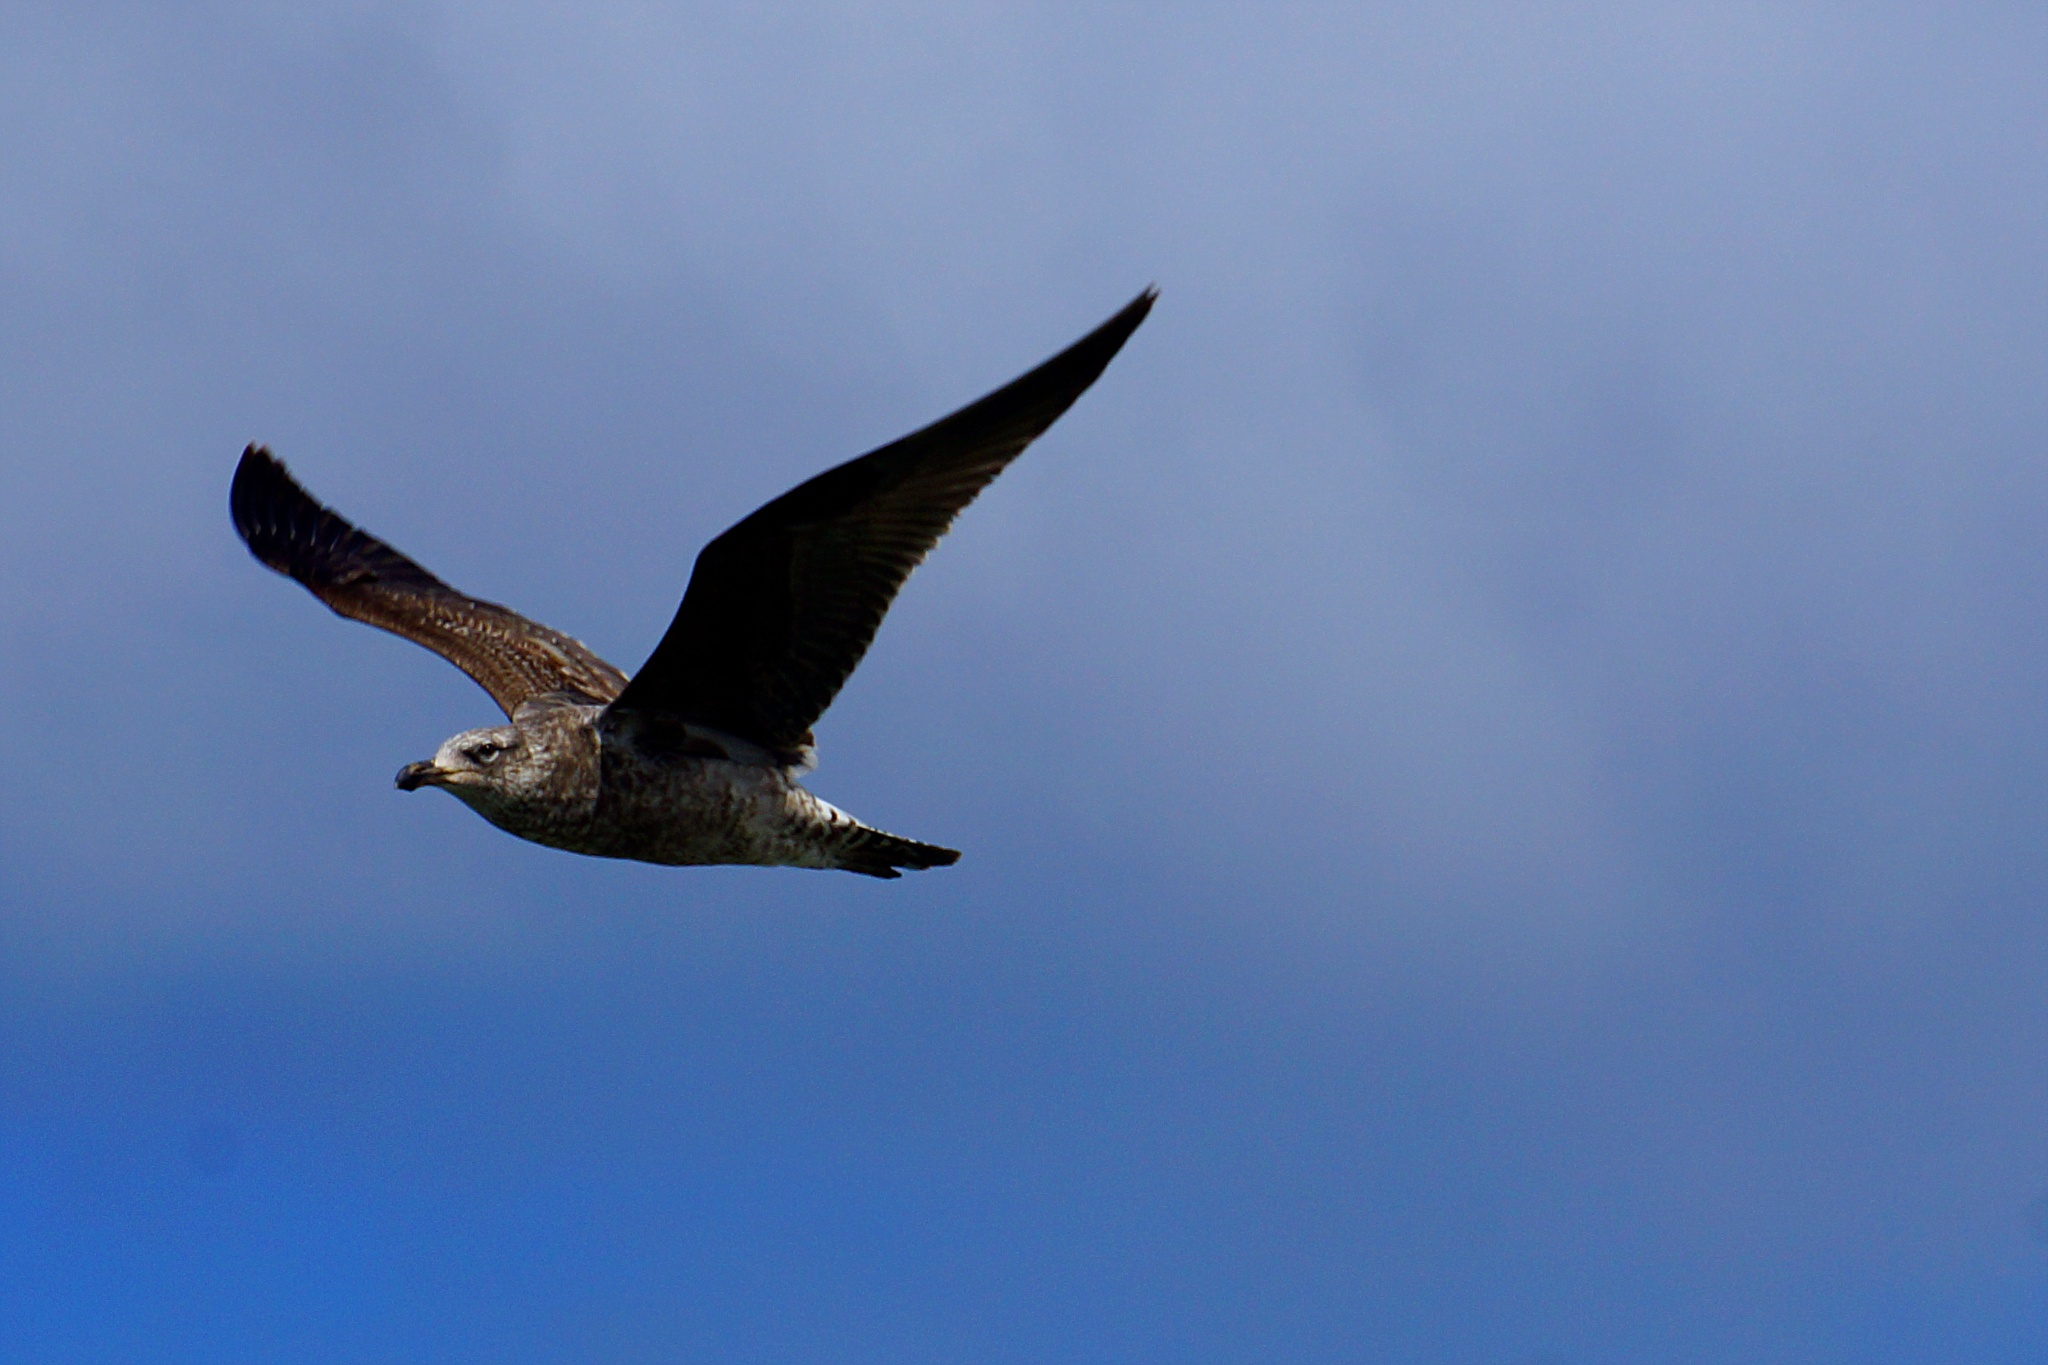 Brindle Seagull by Peter J Dwight